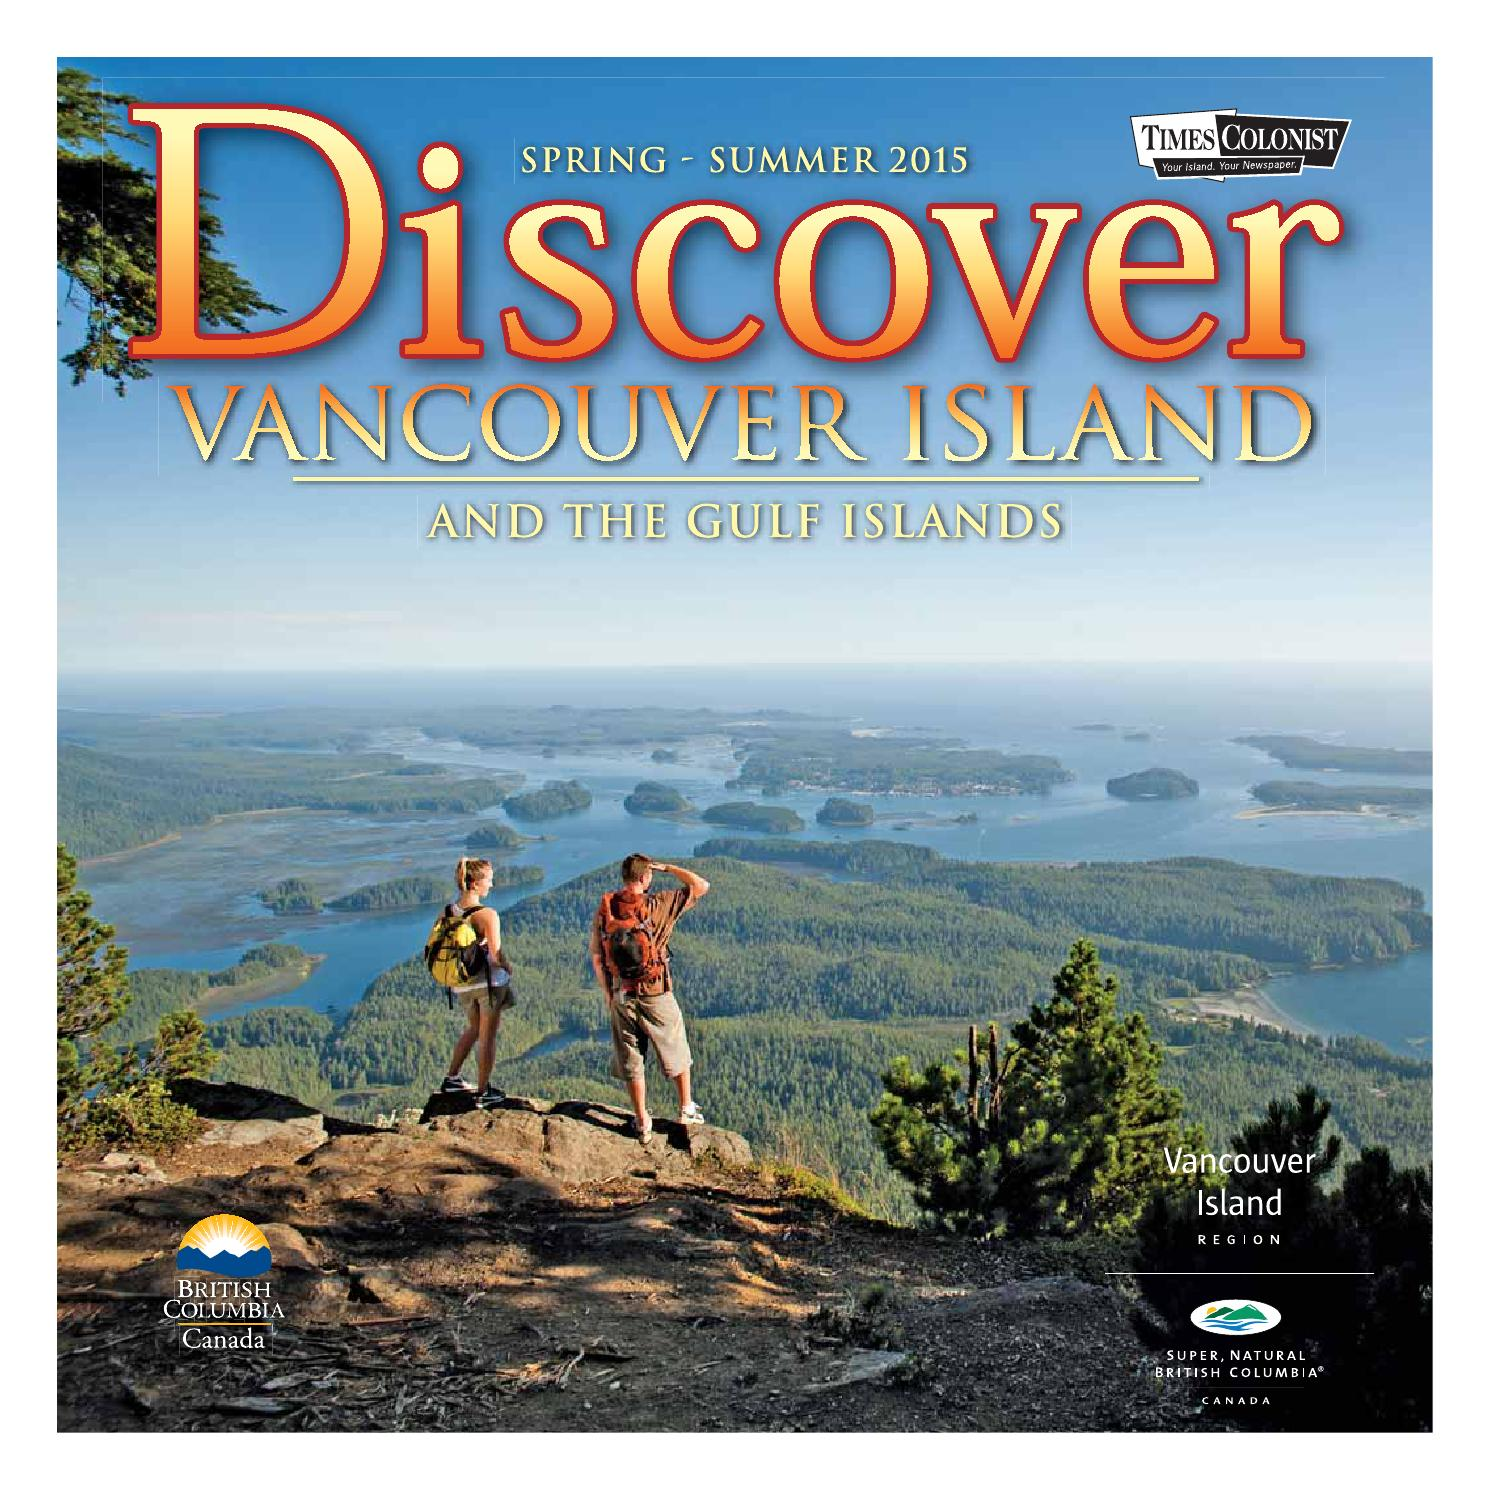 8a3b89625766 Discover Vancouver Island and the Gulf Islands 2015 by Times Colonist -  issuu